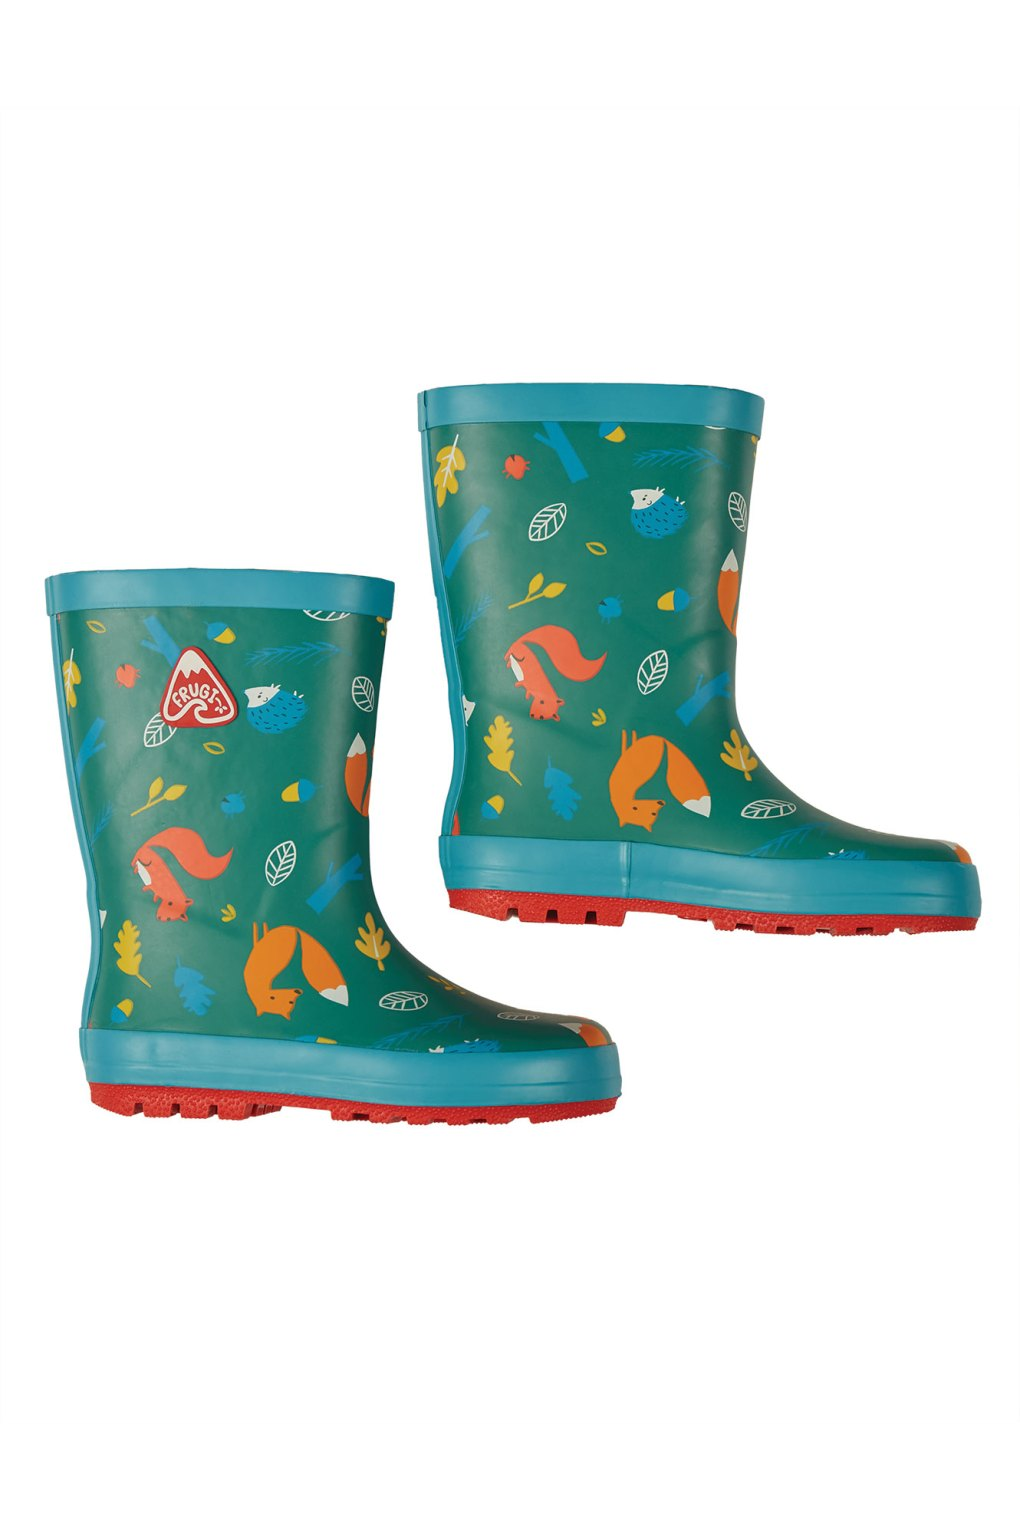 The National Trust Puddle Buster Welly Boots Frugi